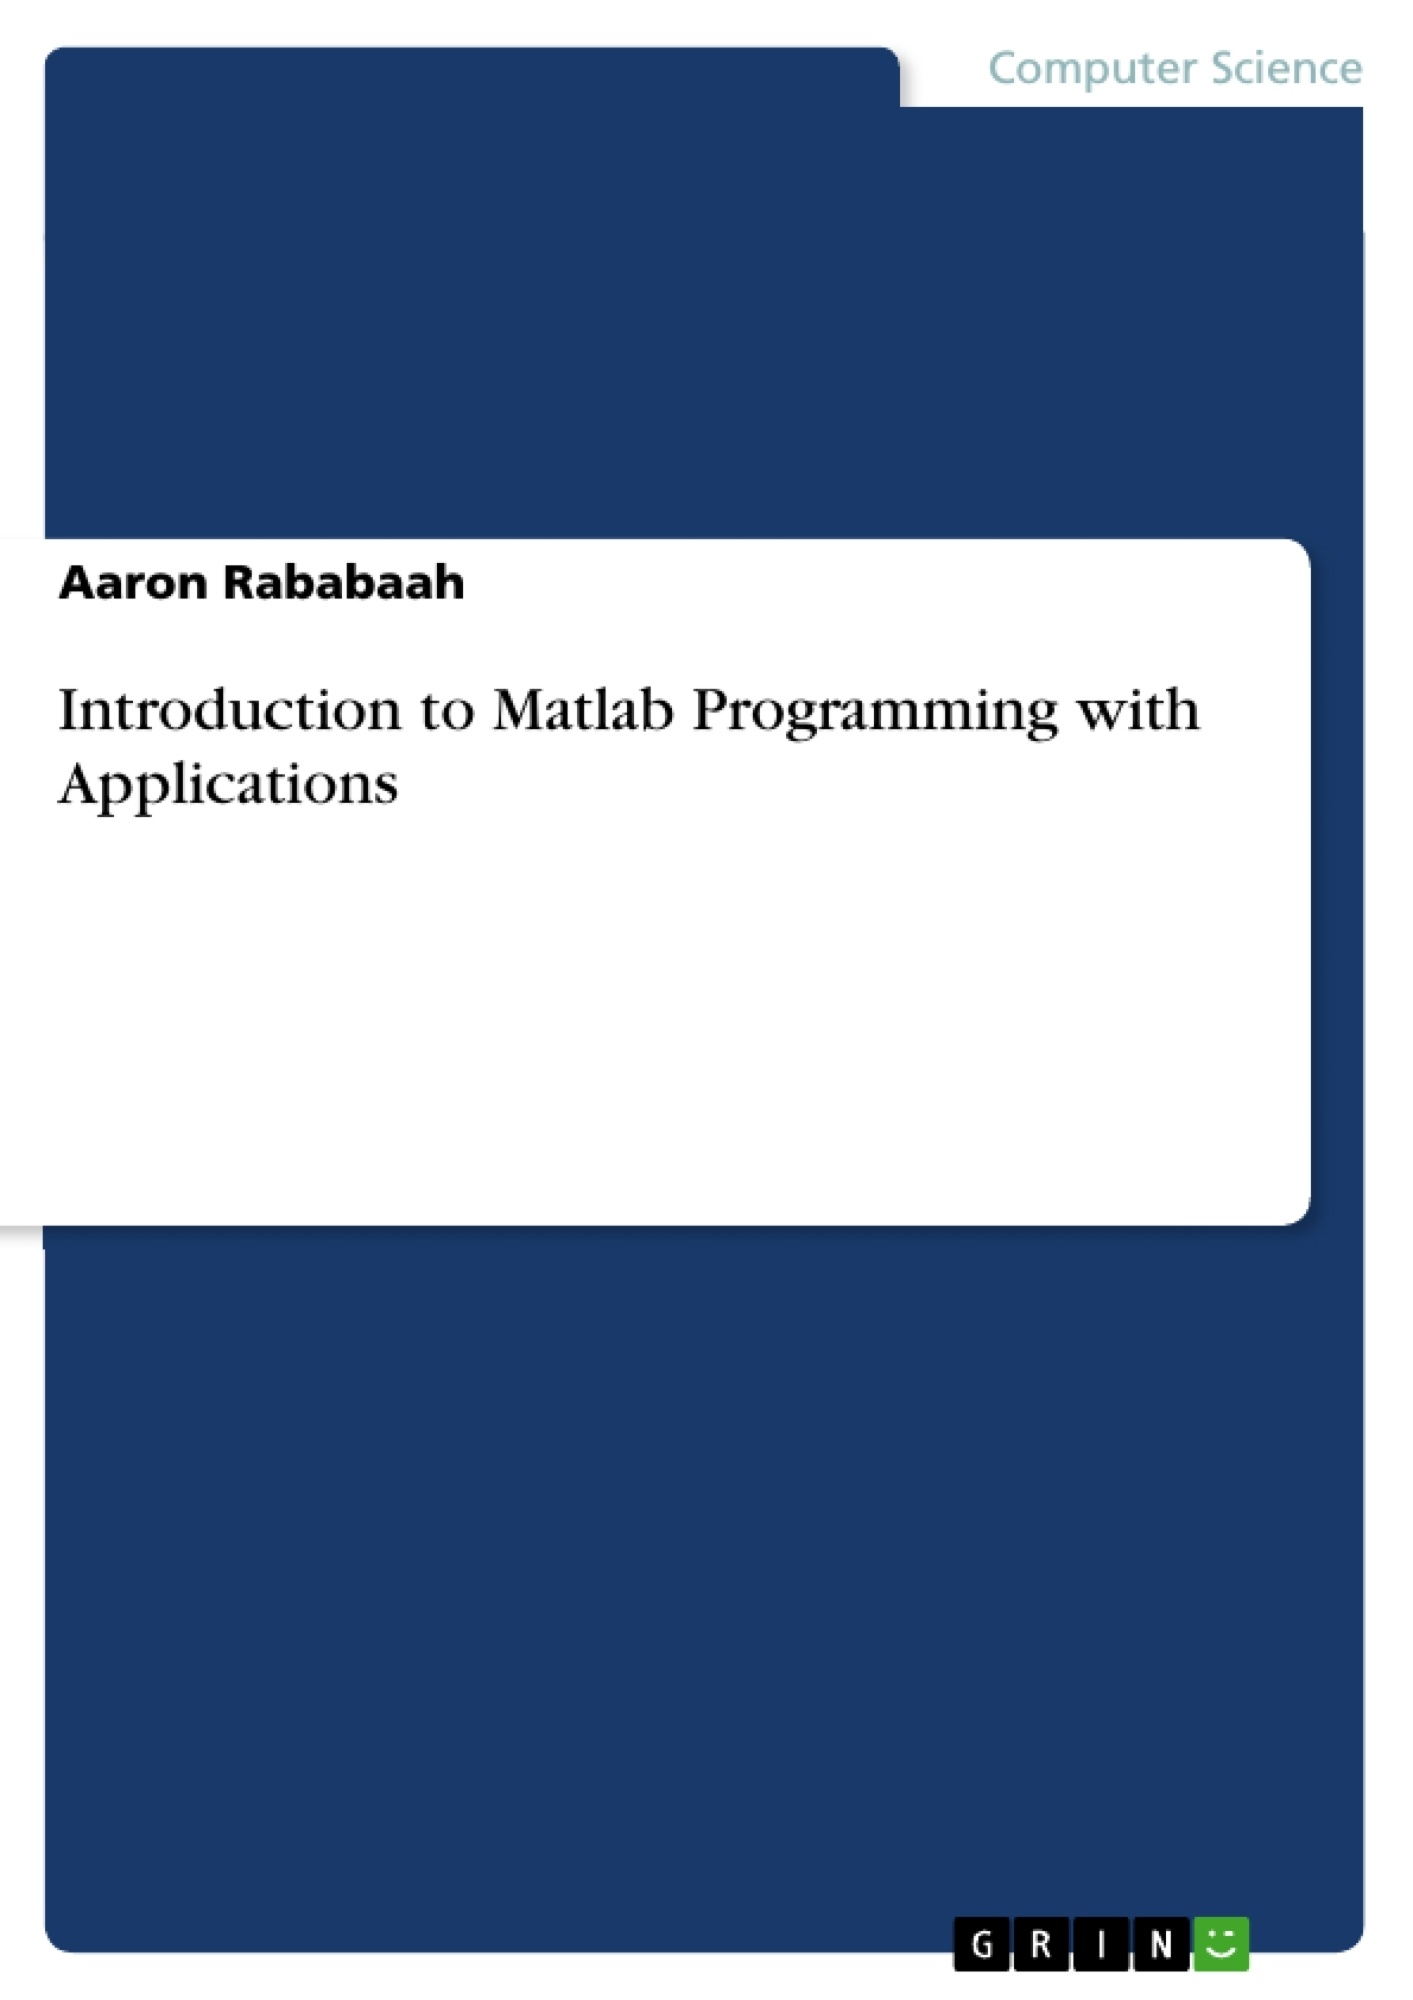 Title: Introduction to Matlab Programming with Applications